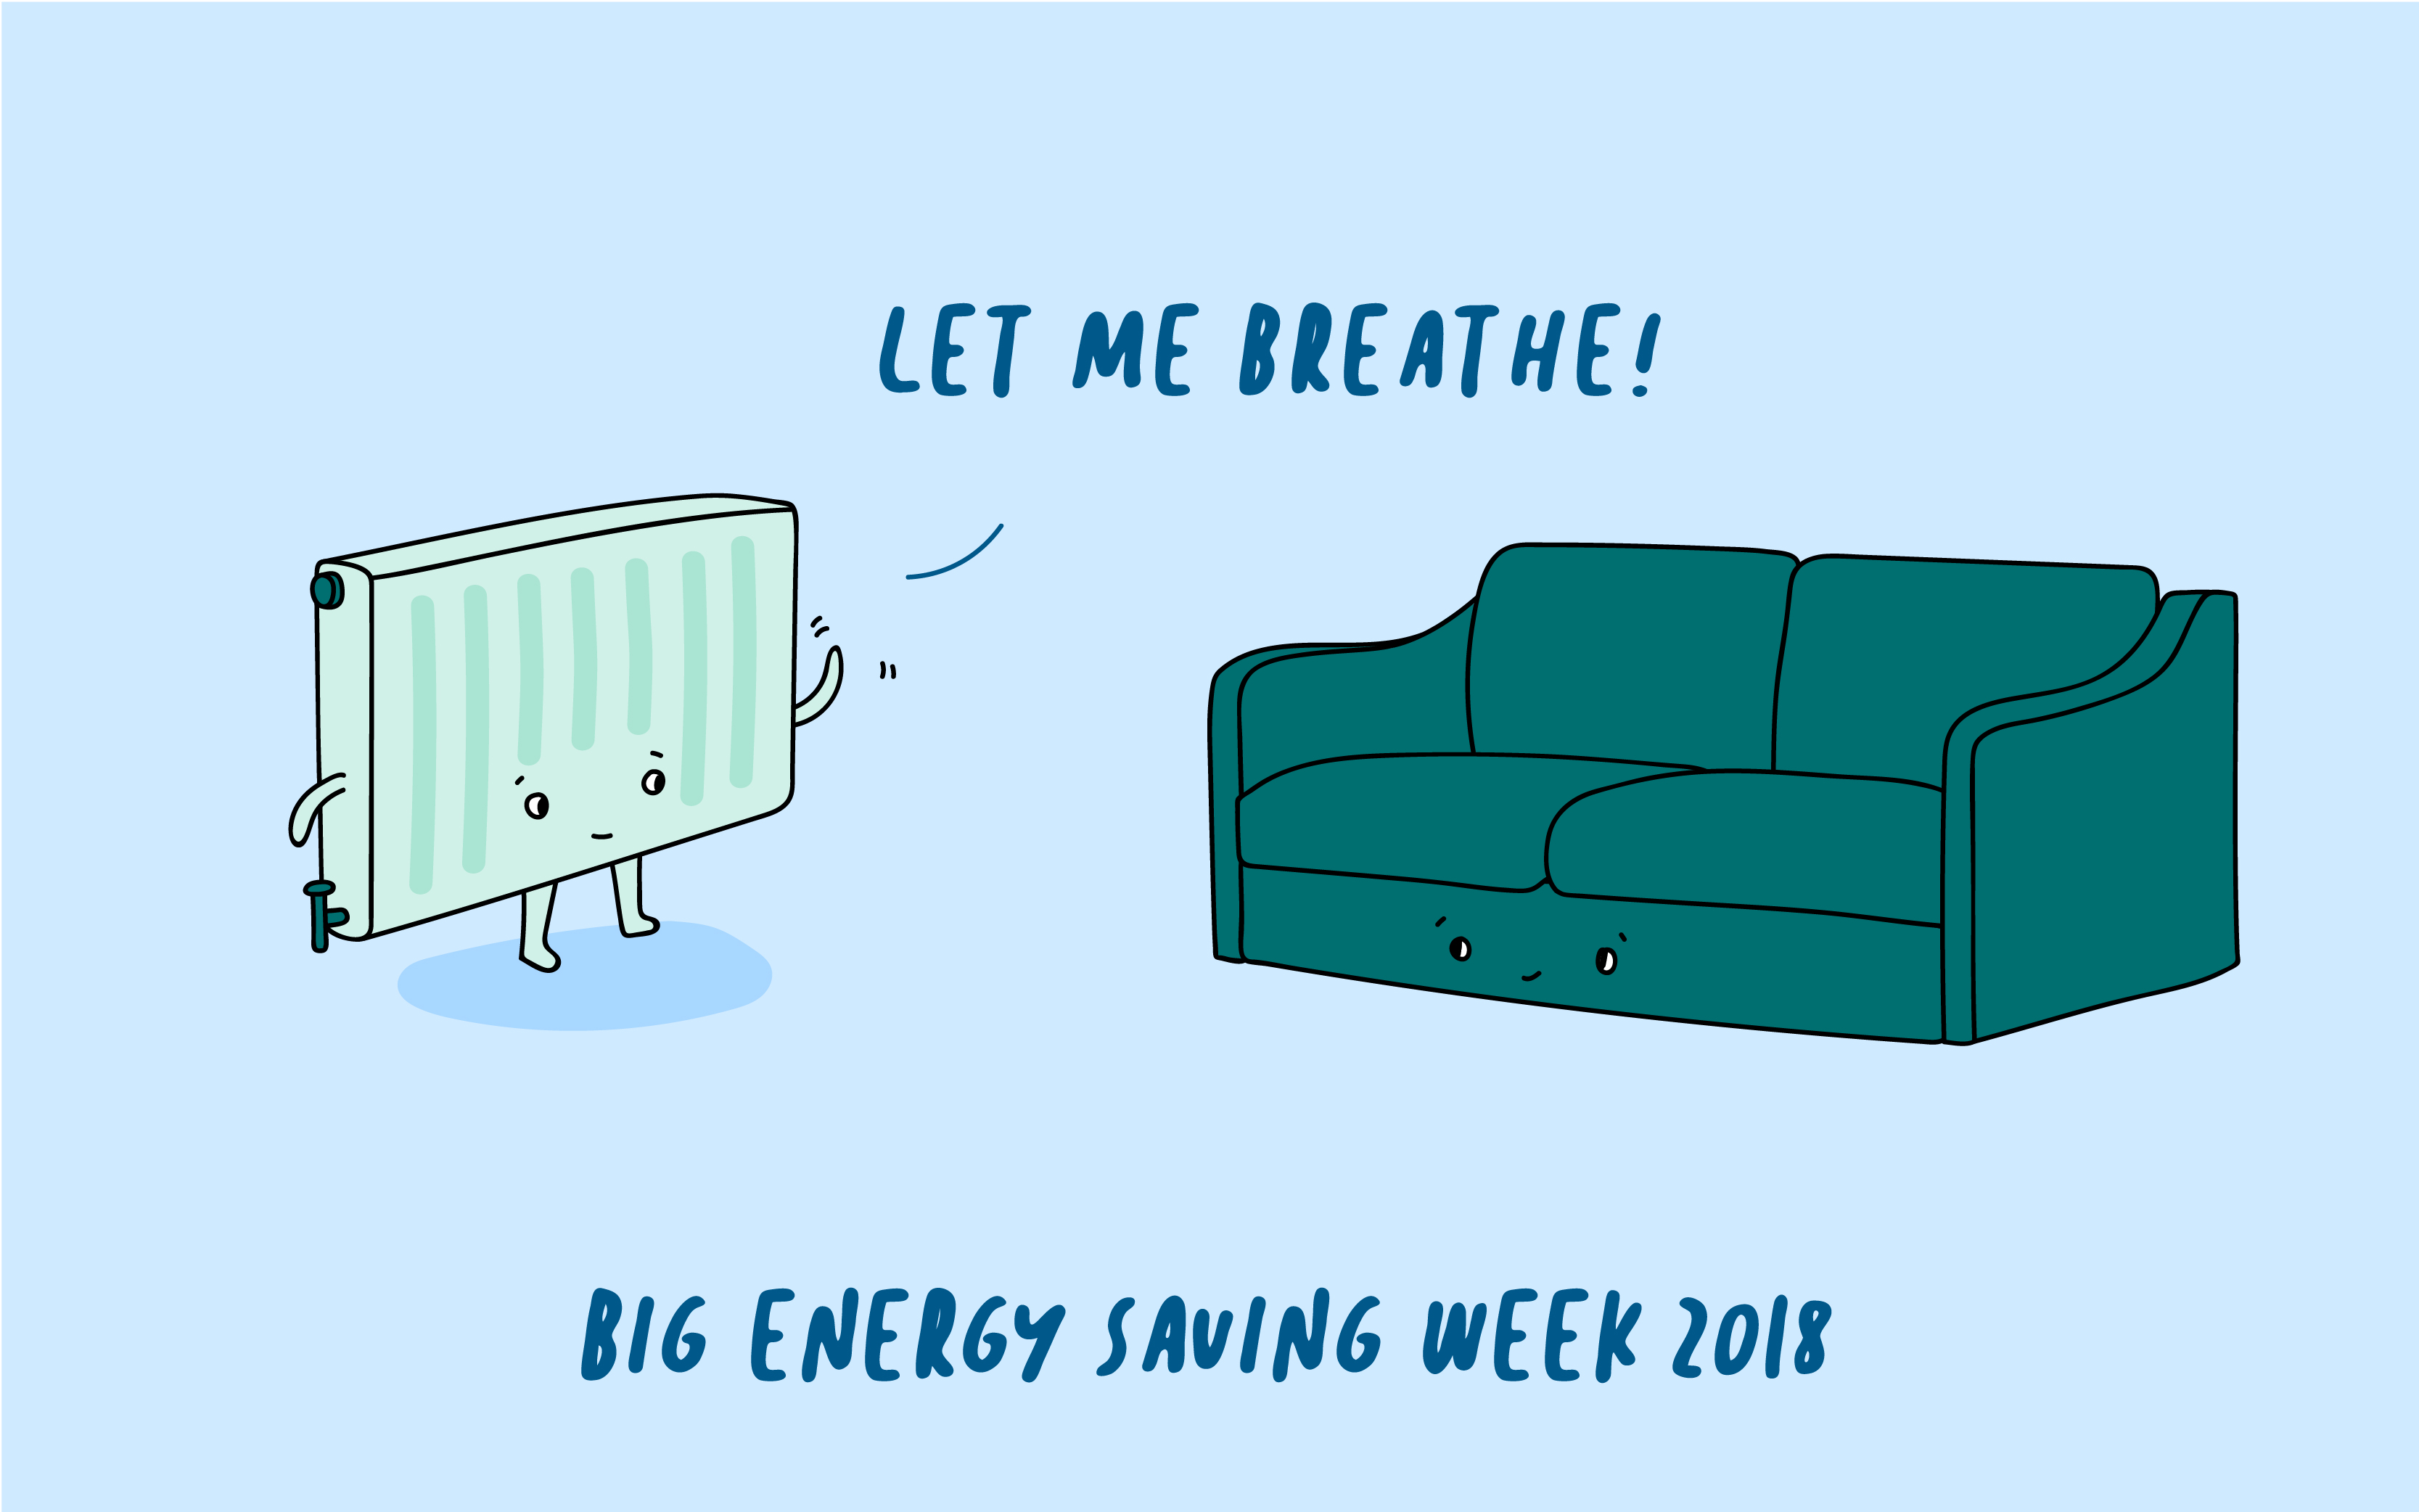 sofa and radiator talking about energy saving for big energy saving week